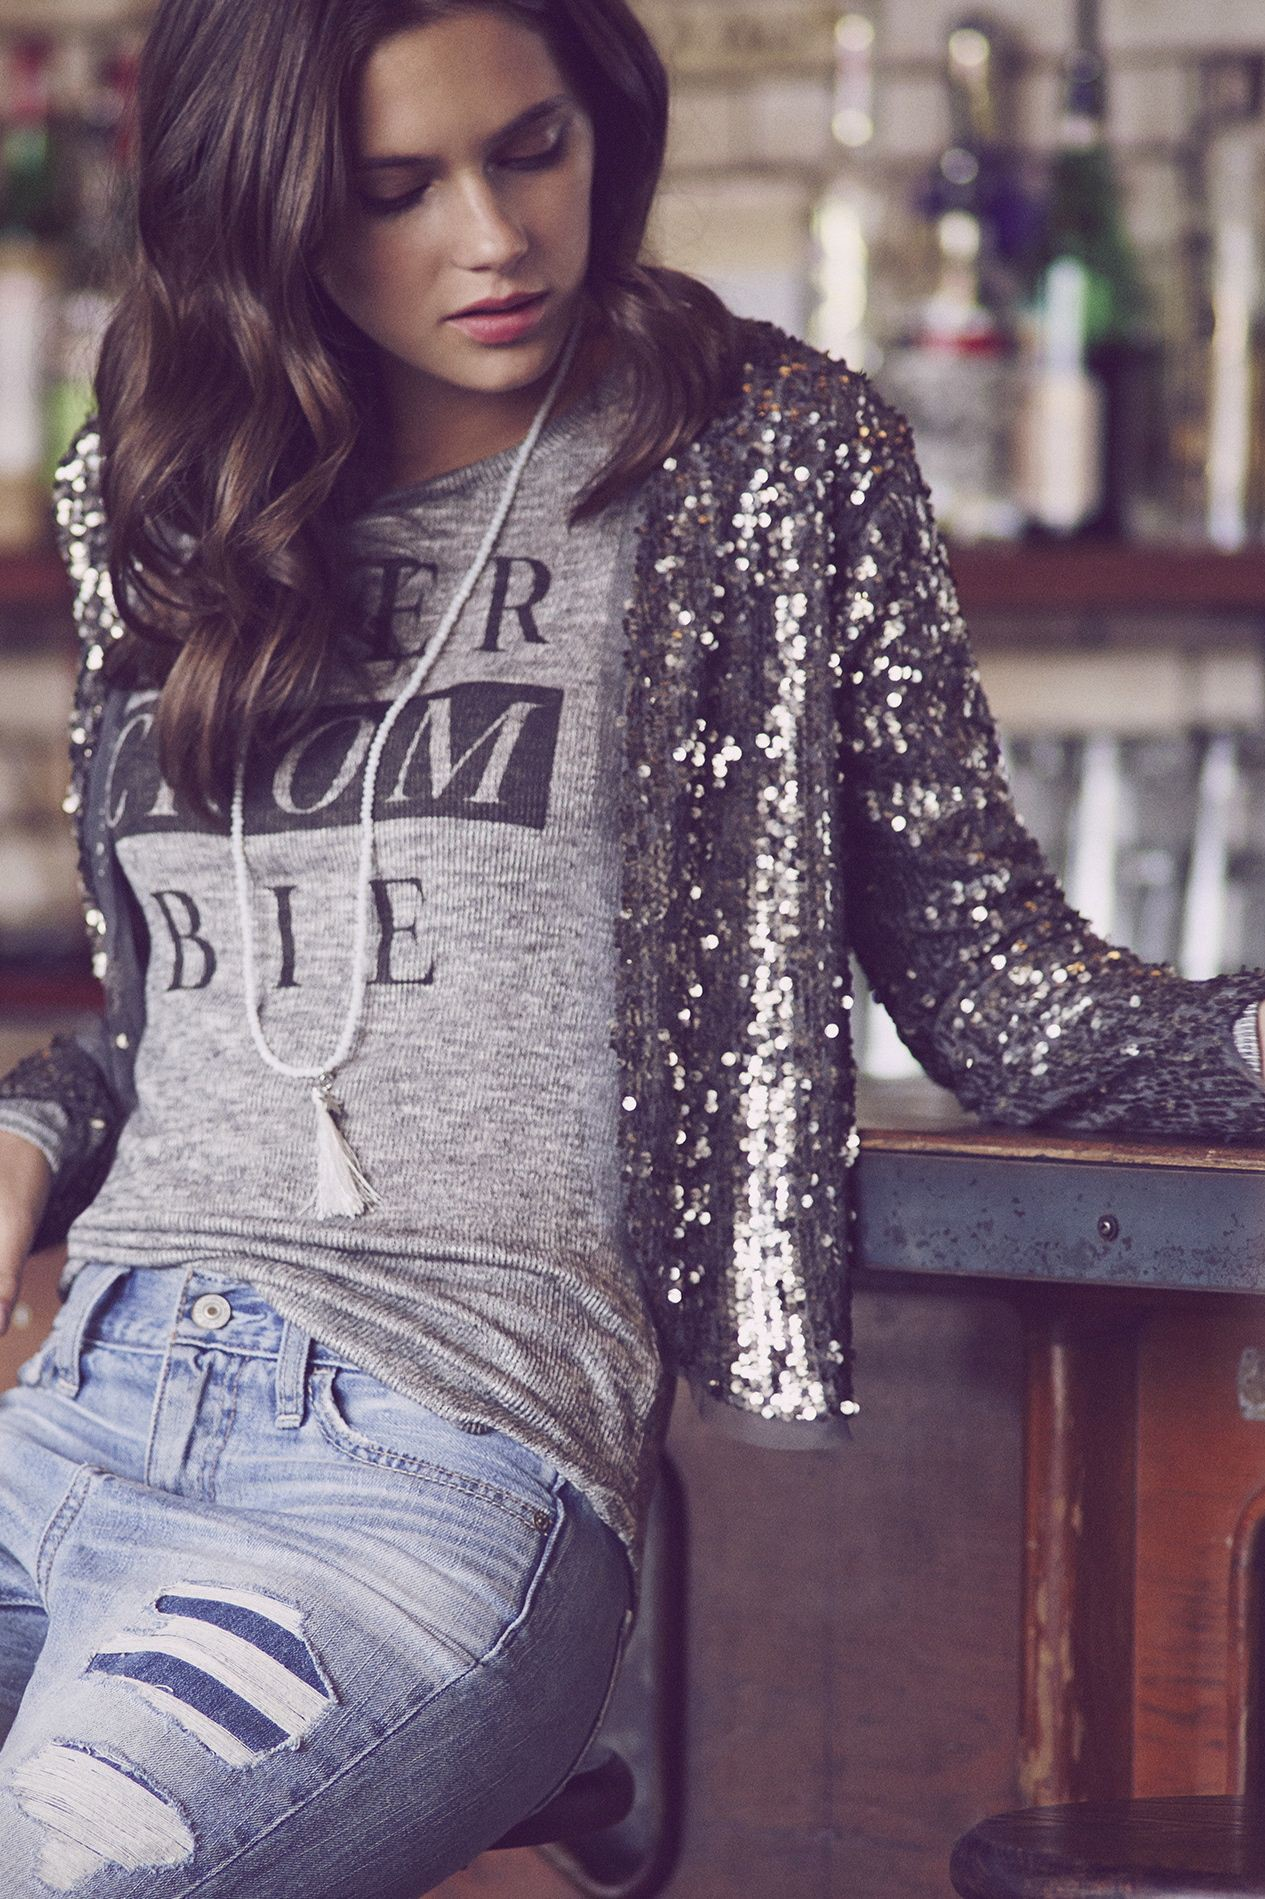 Silver sequin blazer with jeans